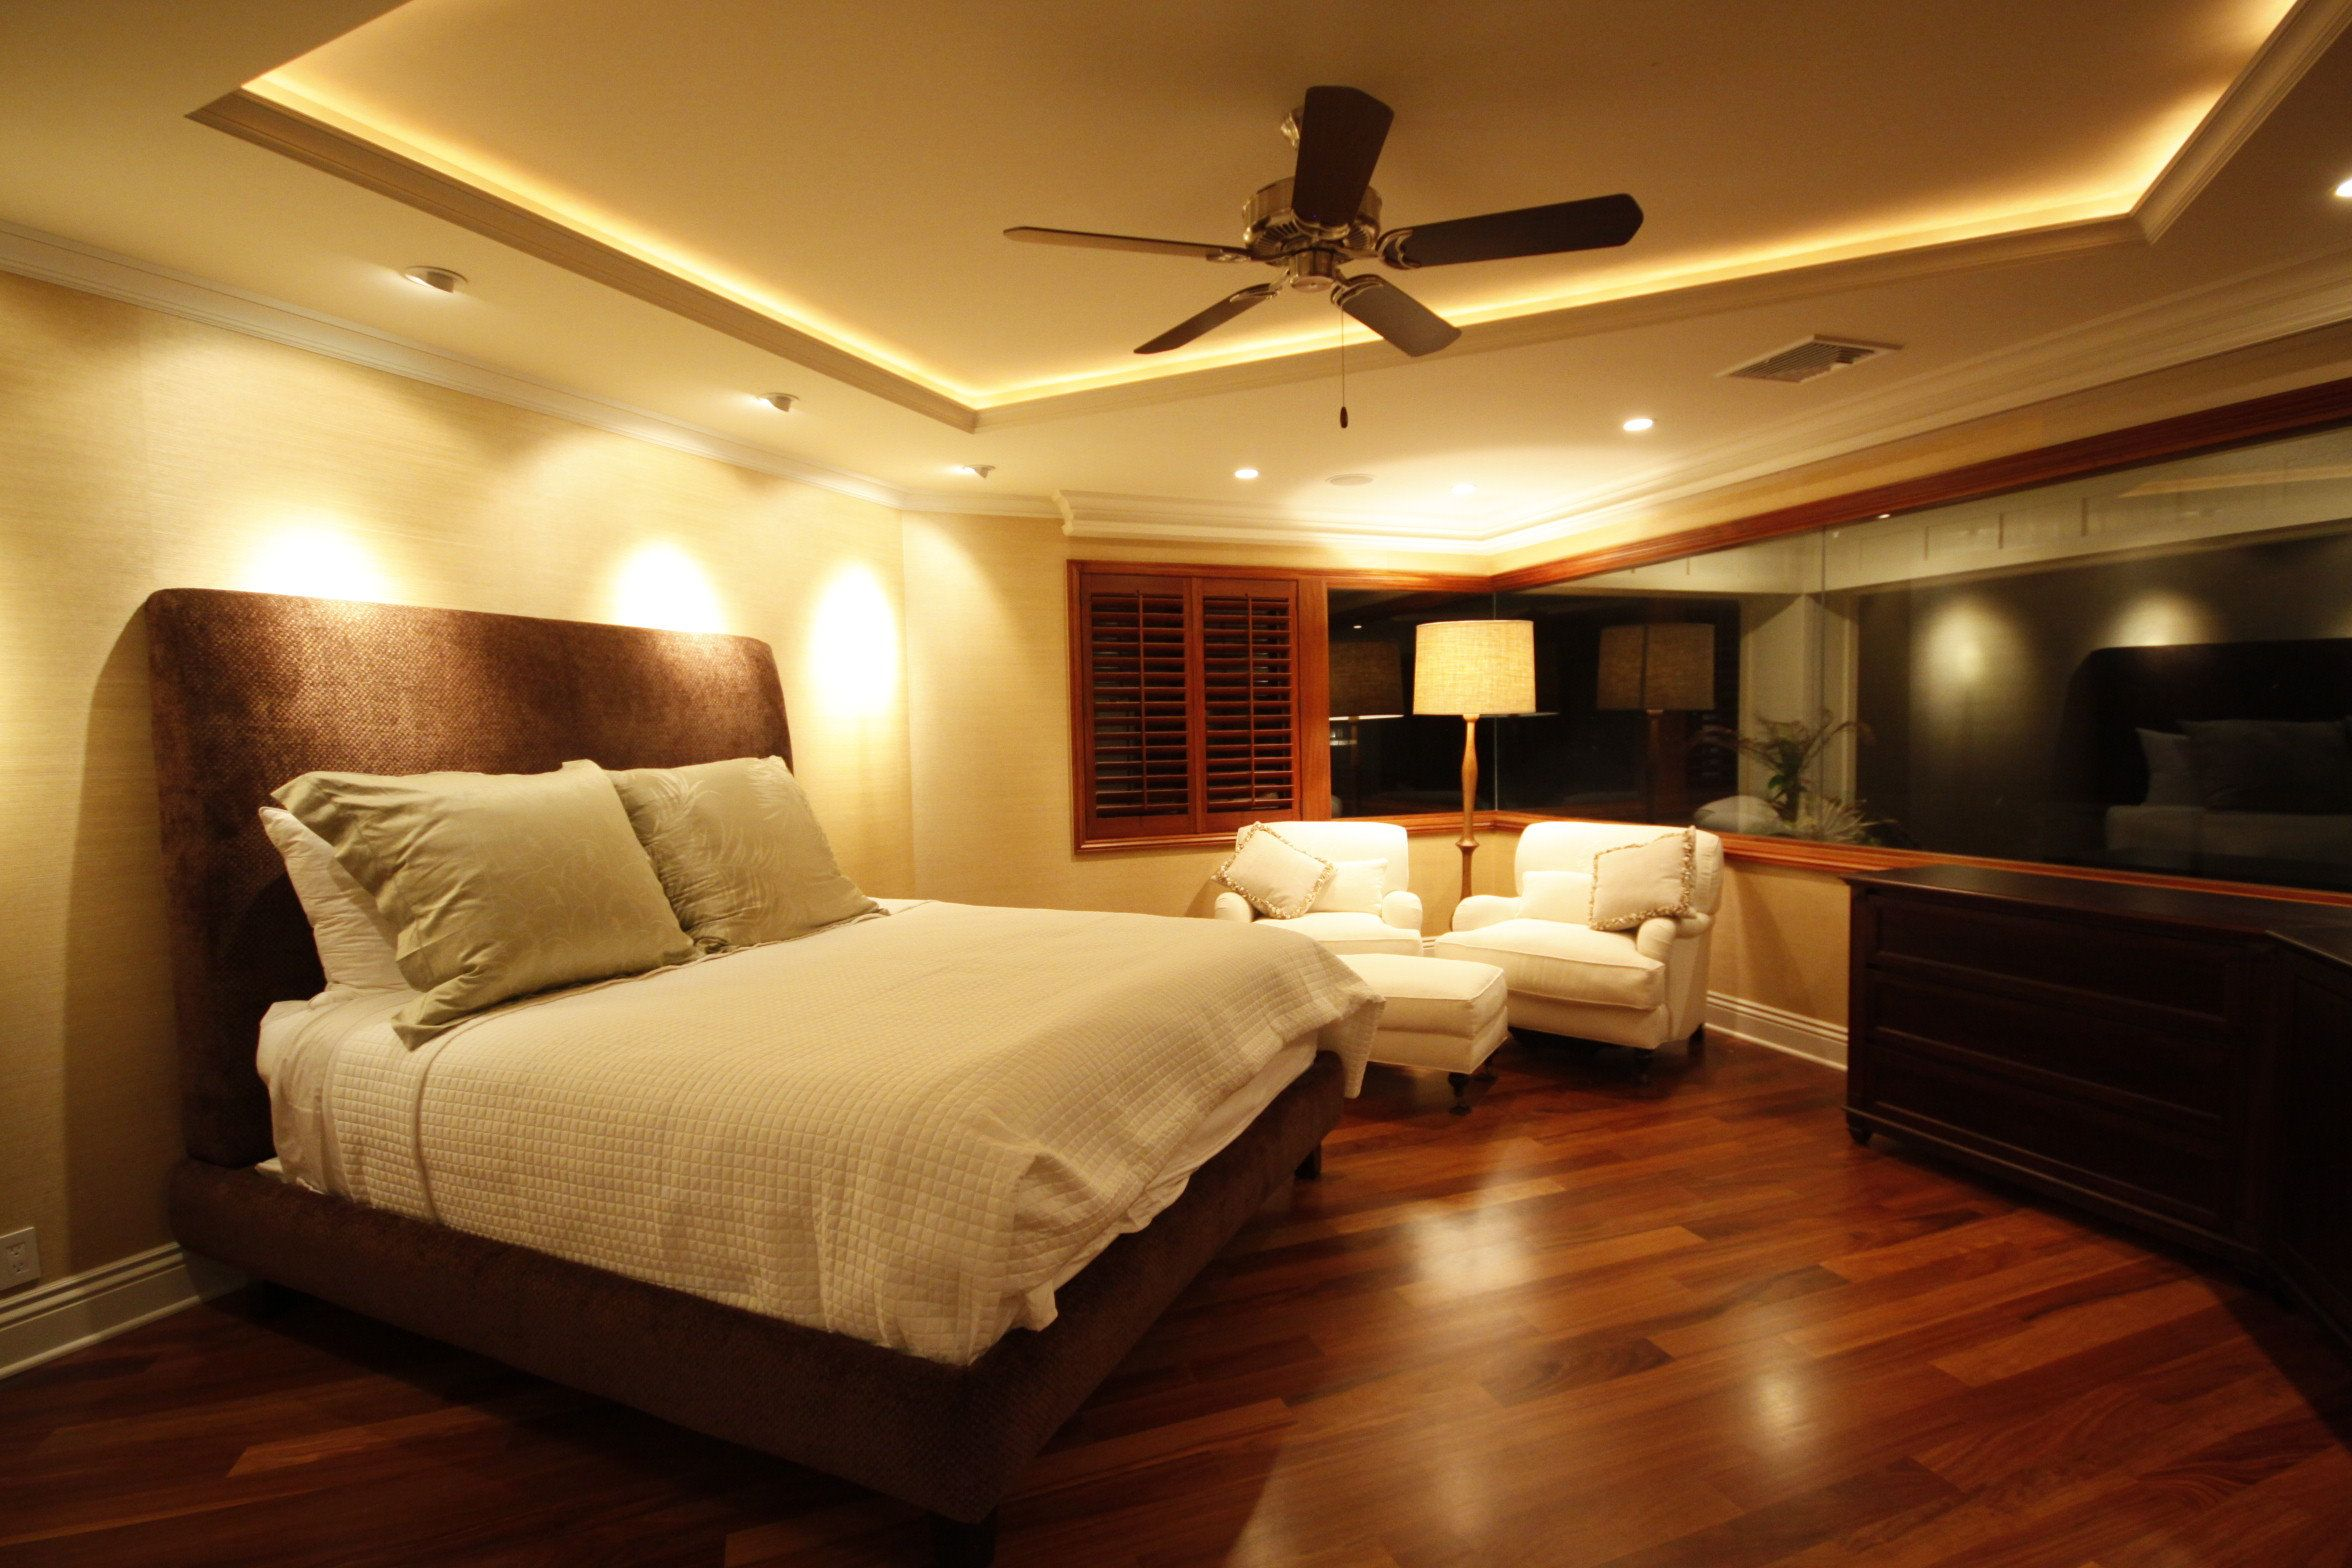 Appealing master bedroom modern decor with wooden floors for Master bedrooms